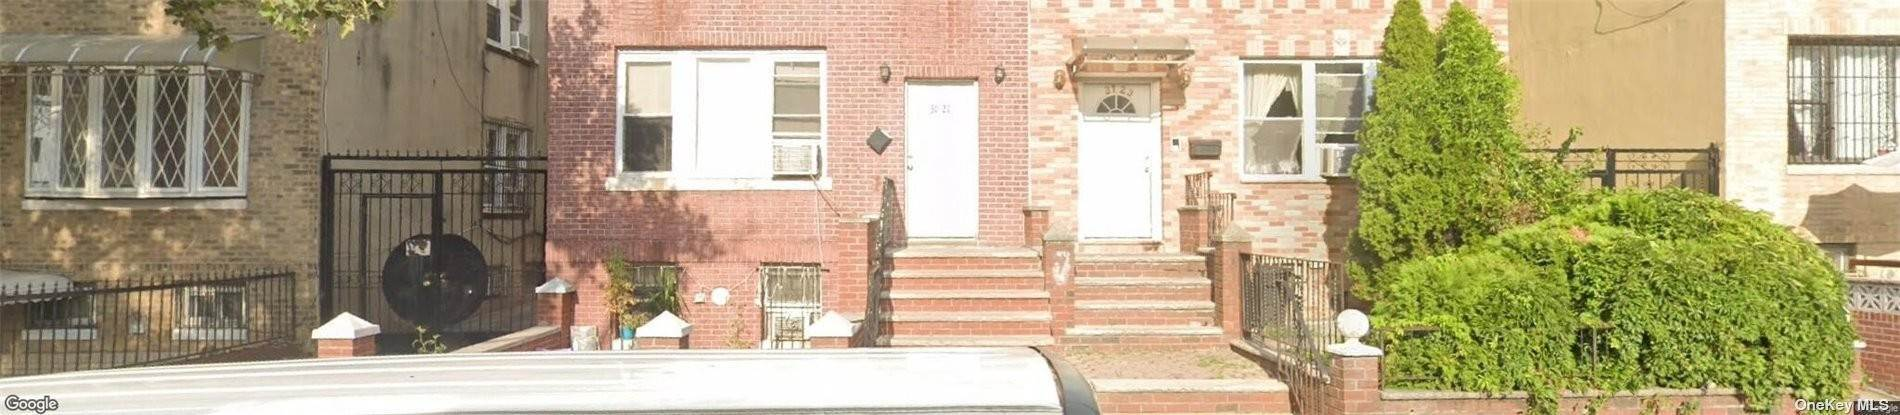 Residential Lease vid 31-21 91st # 2nd fl East Elmhurst, New York 11369 Förenta staterna